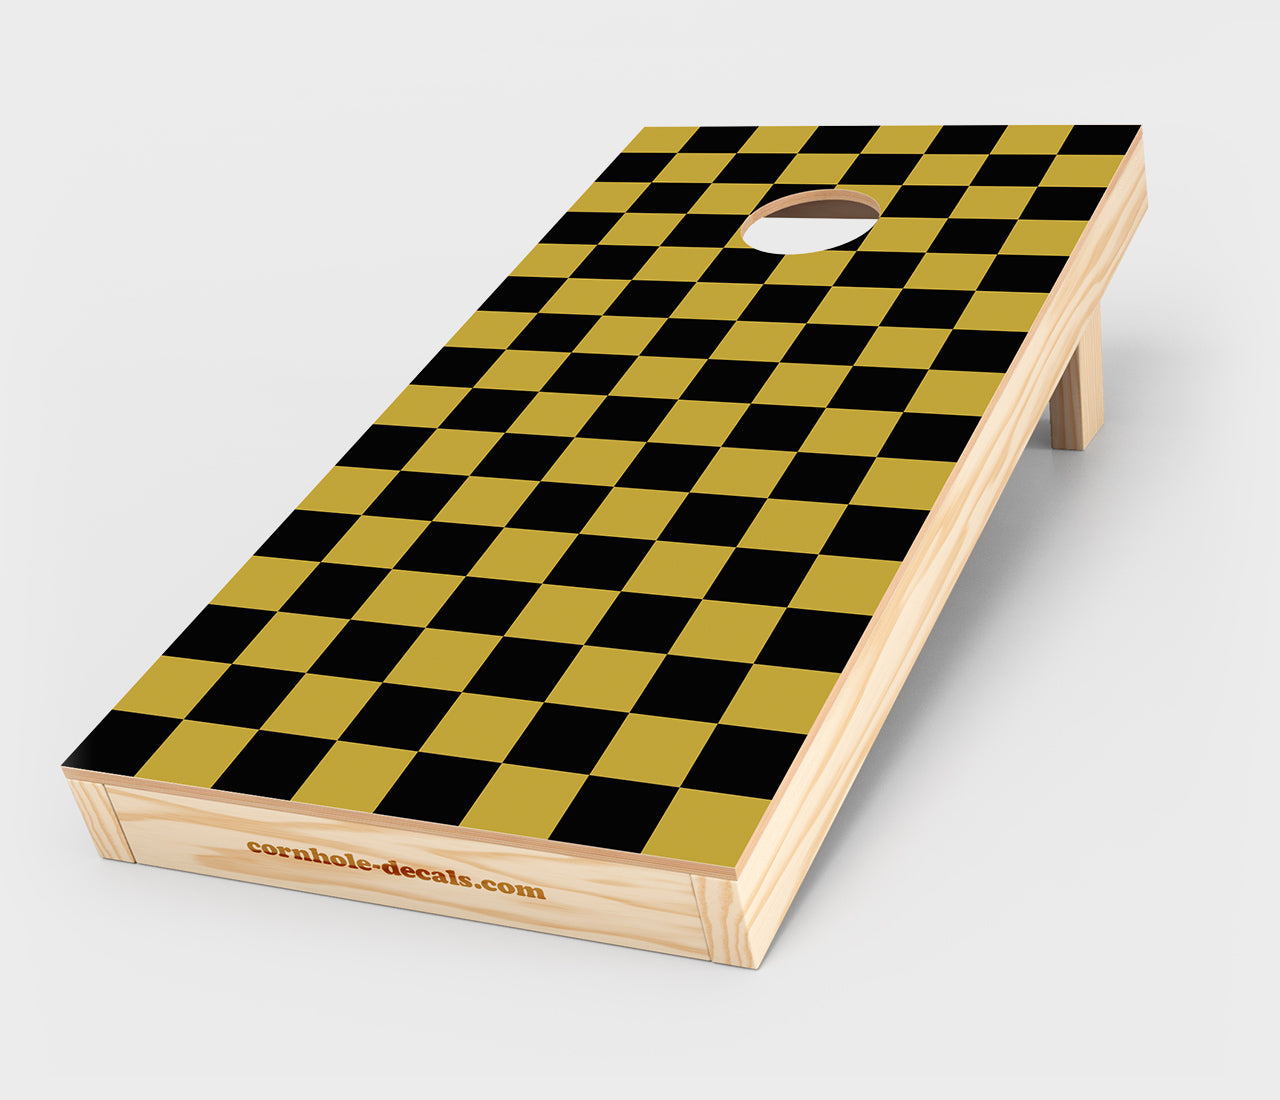 Chuggles Cornhole - Black and Gold Checkered Cornhole Decal